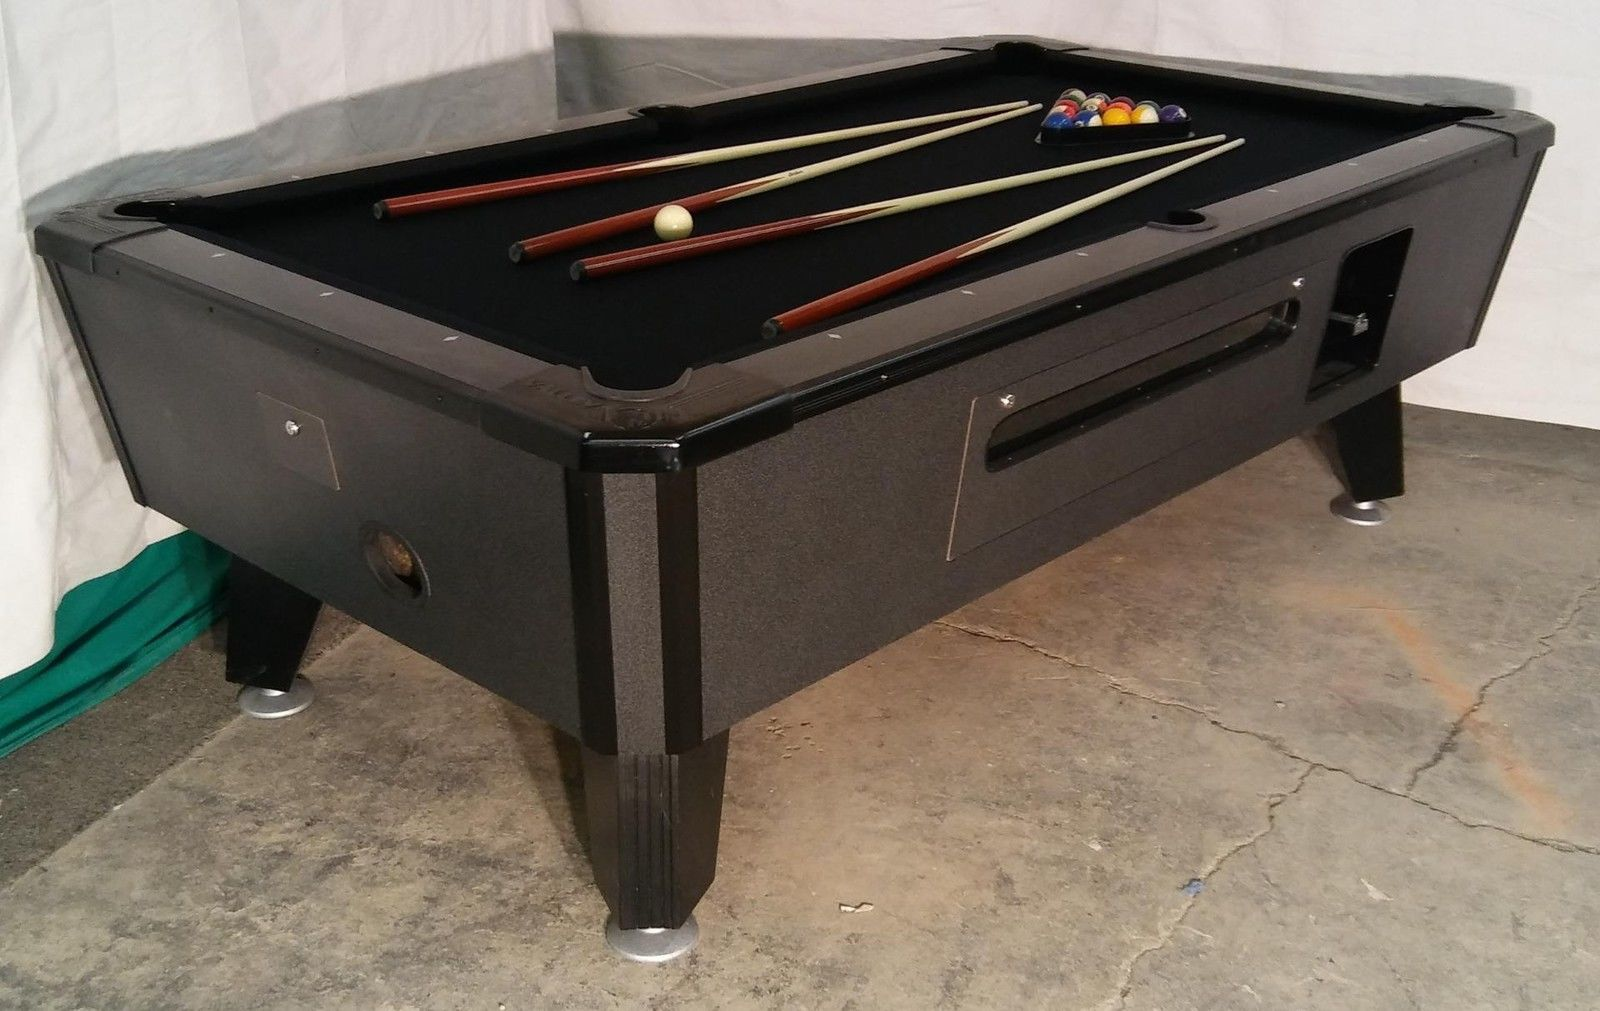 Valley cougar commercial bar size 7 coin op pool table black cat in valley cougar commercial bar size 7 coin op pool table black cat in black watchthetrailerfo